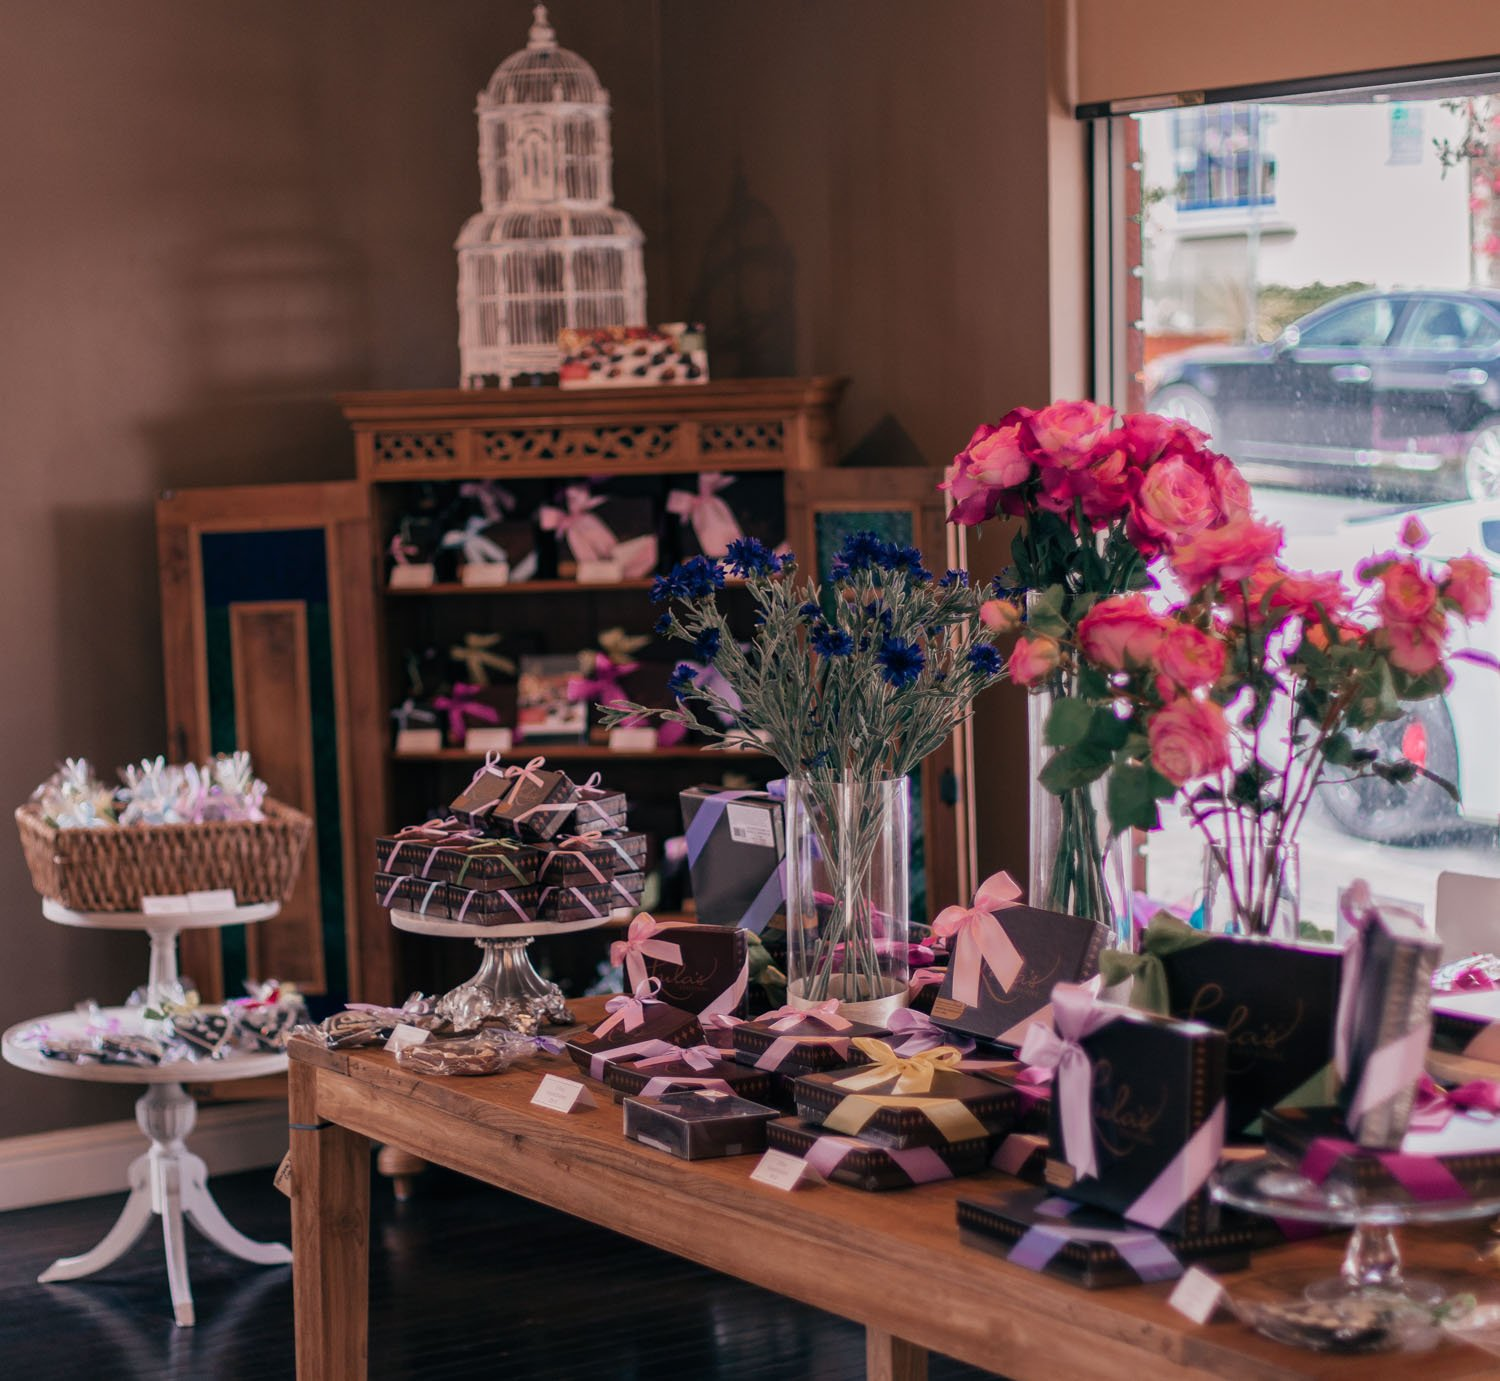 Fashion Blogger Elizabeth Hugen of Lizzie in Lace shares what to do in Carmel by-the-sea including exploring Carmel by-the-sea restaurants